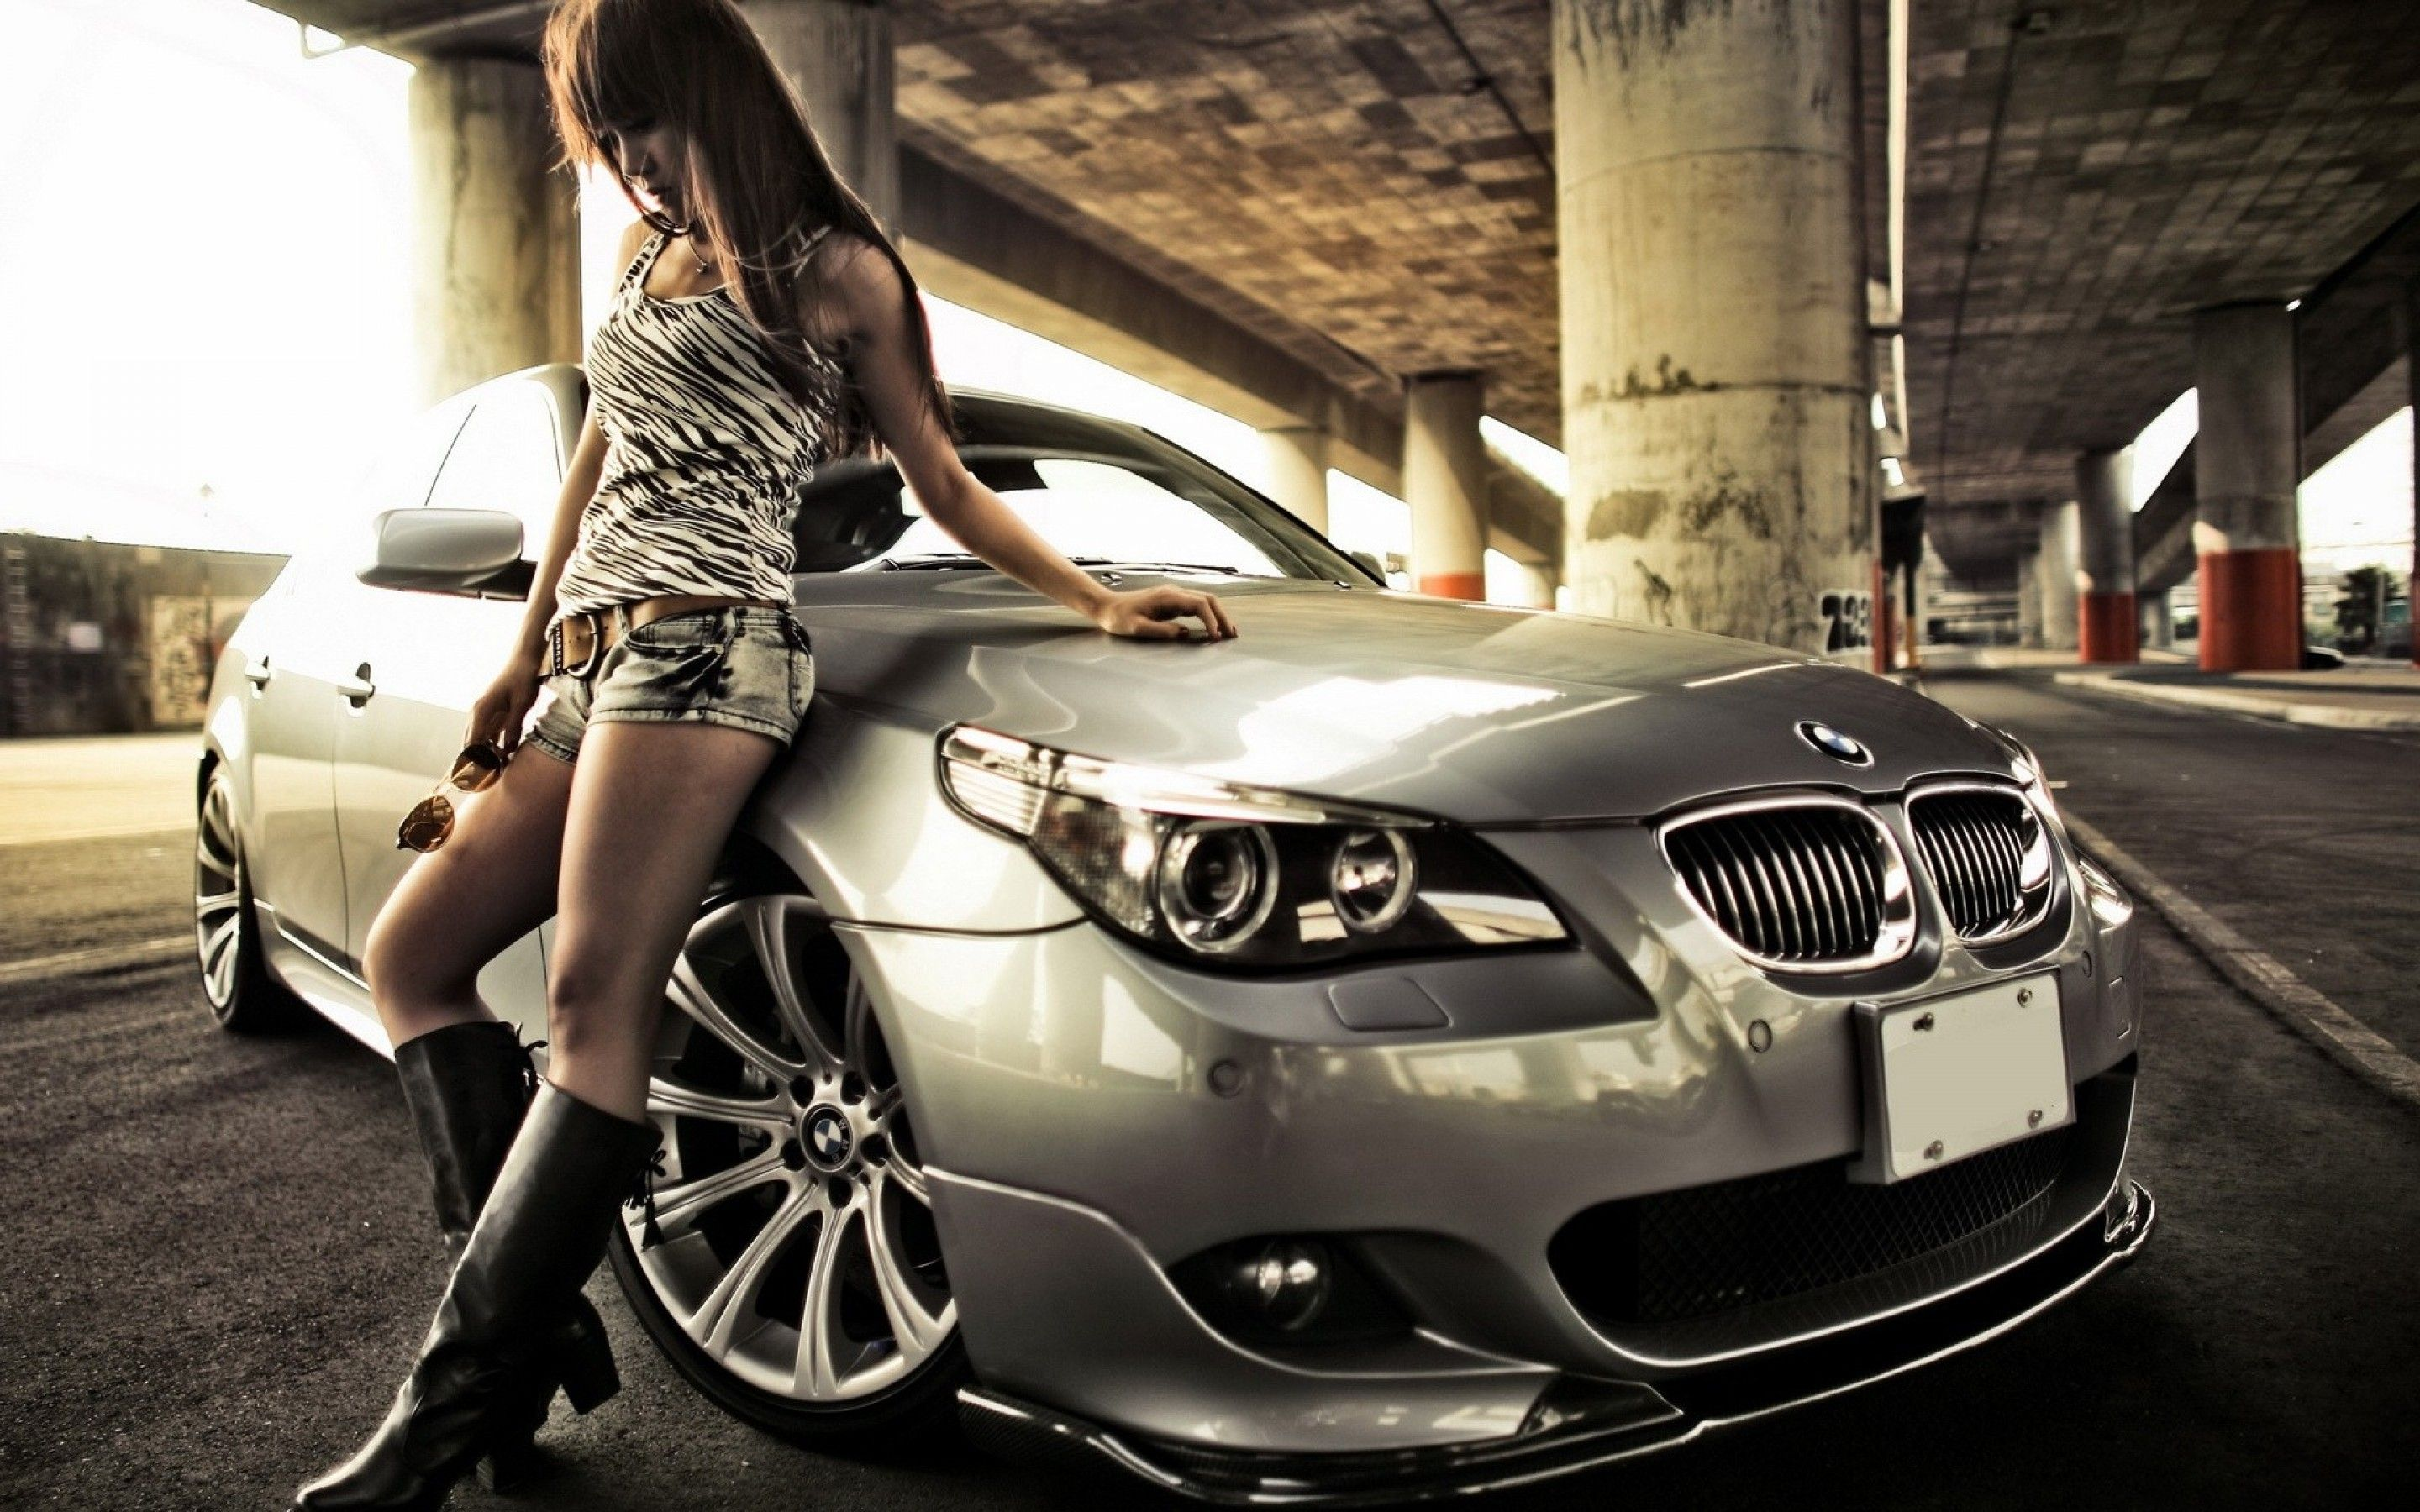 Bmw Show Girl Hd Wallpaper 1080p 1920x1080 Classy Cars And Women